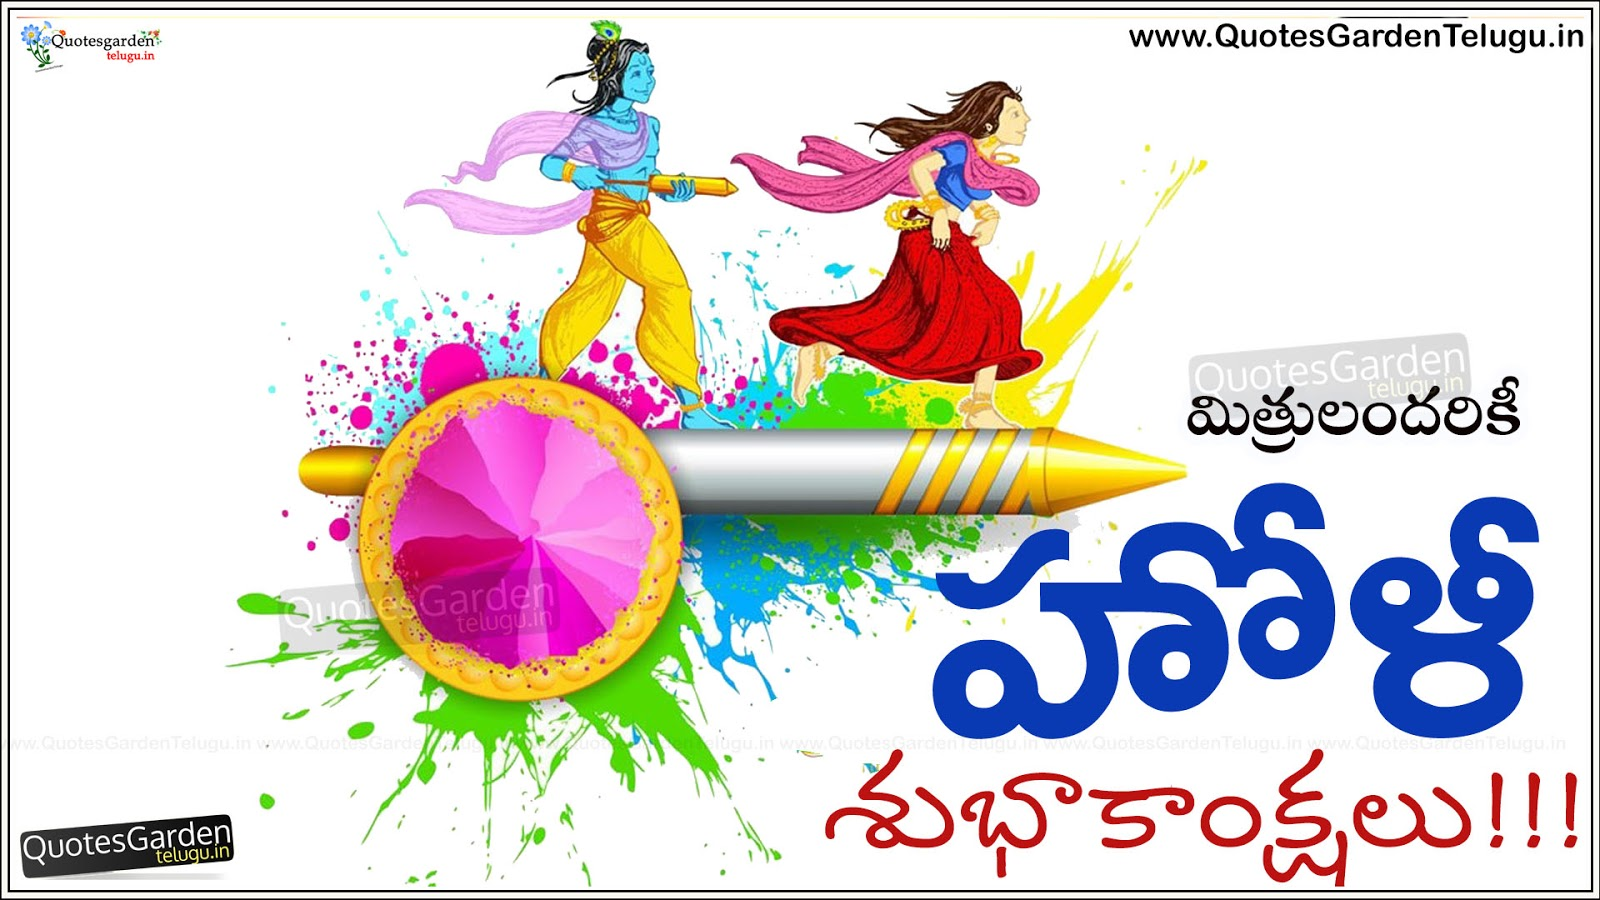 Best telugu holi greetings messages quotes garden telugu telugu best telugu holi greetings messages m4hsunfo